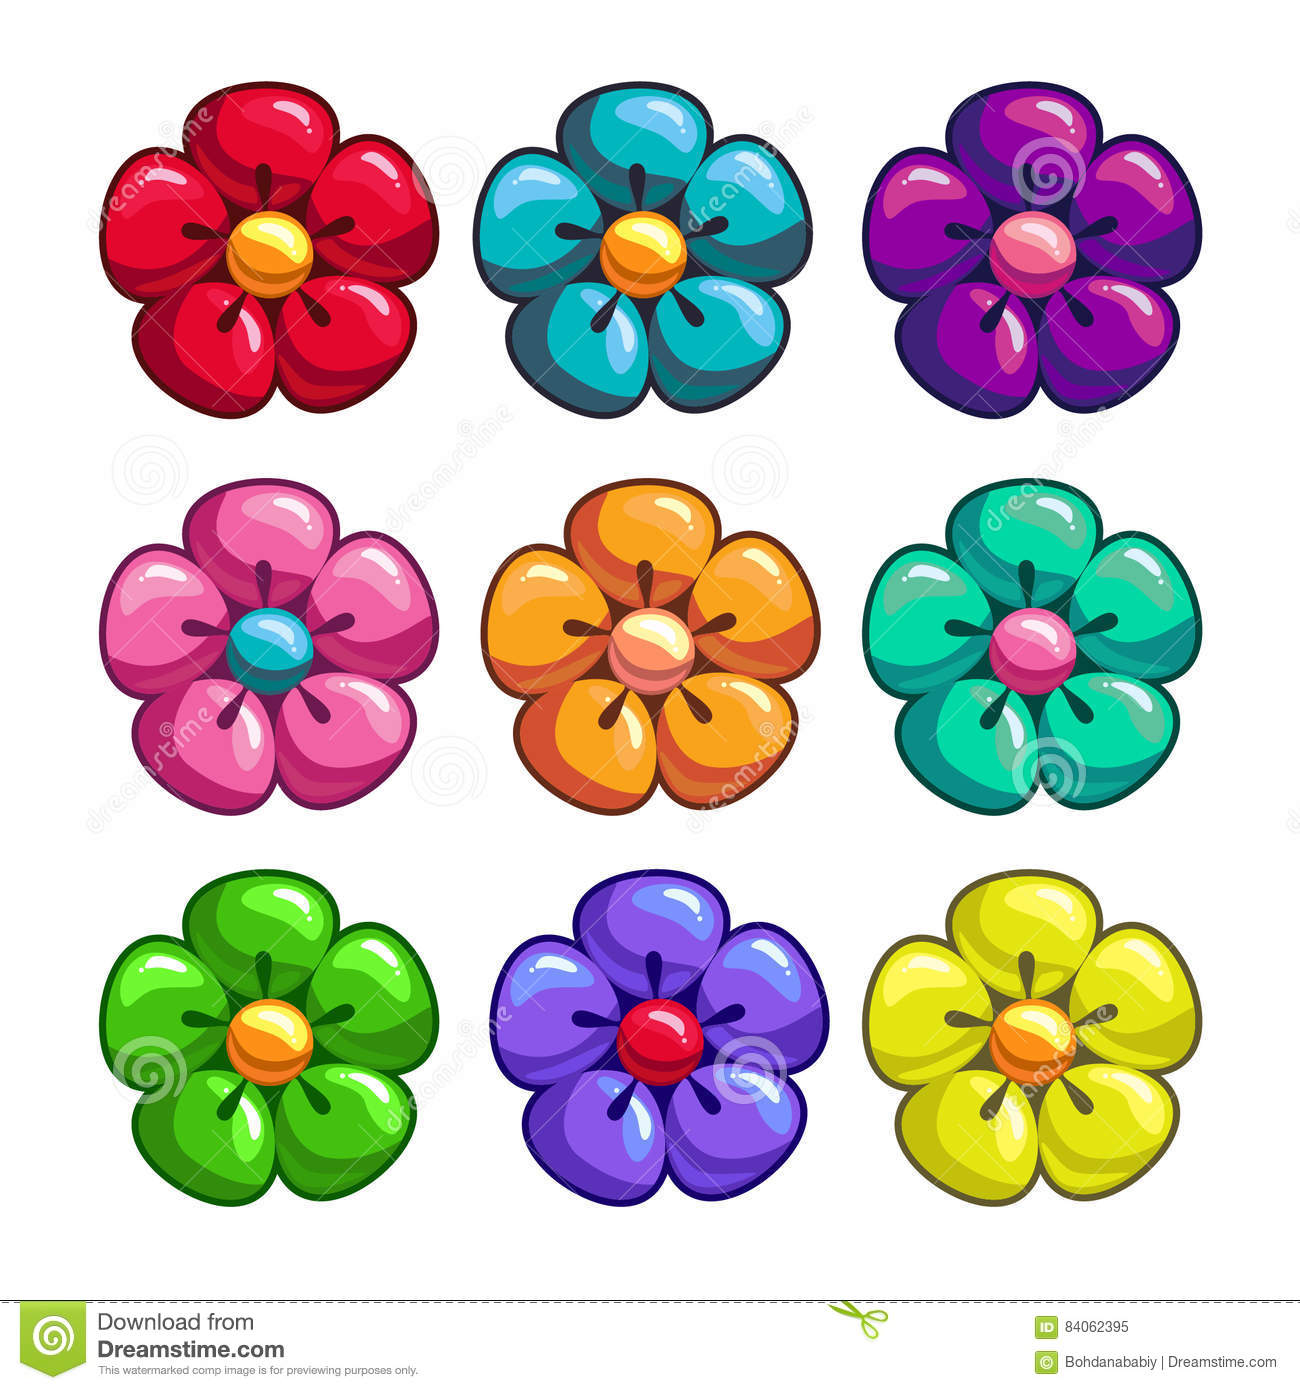 A set of colored flowers stock vector  Illustration of blue